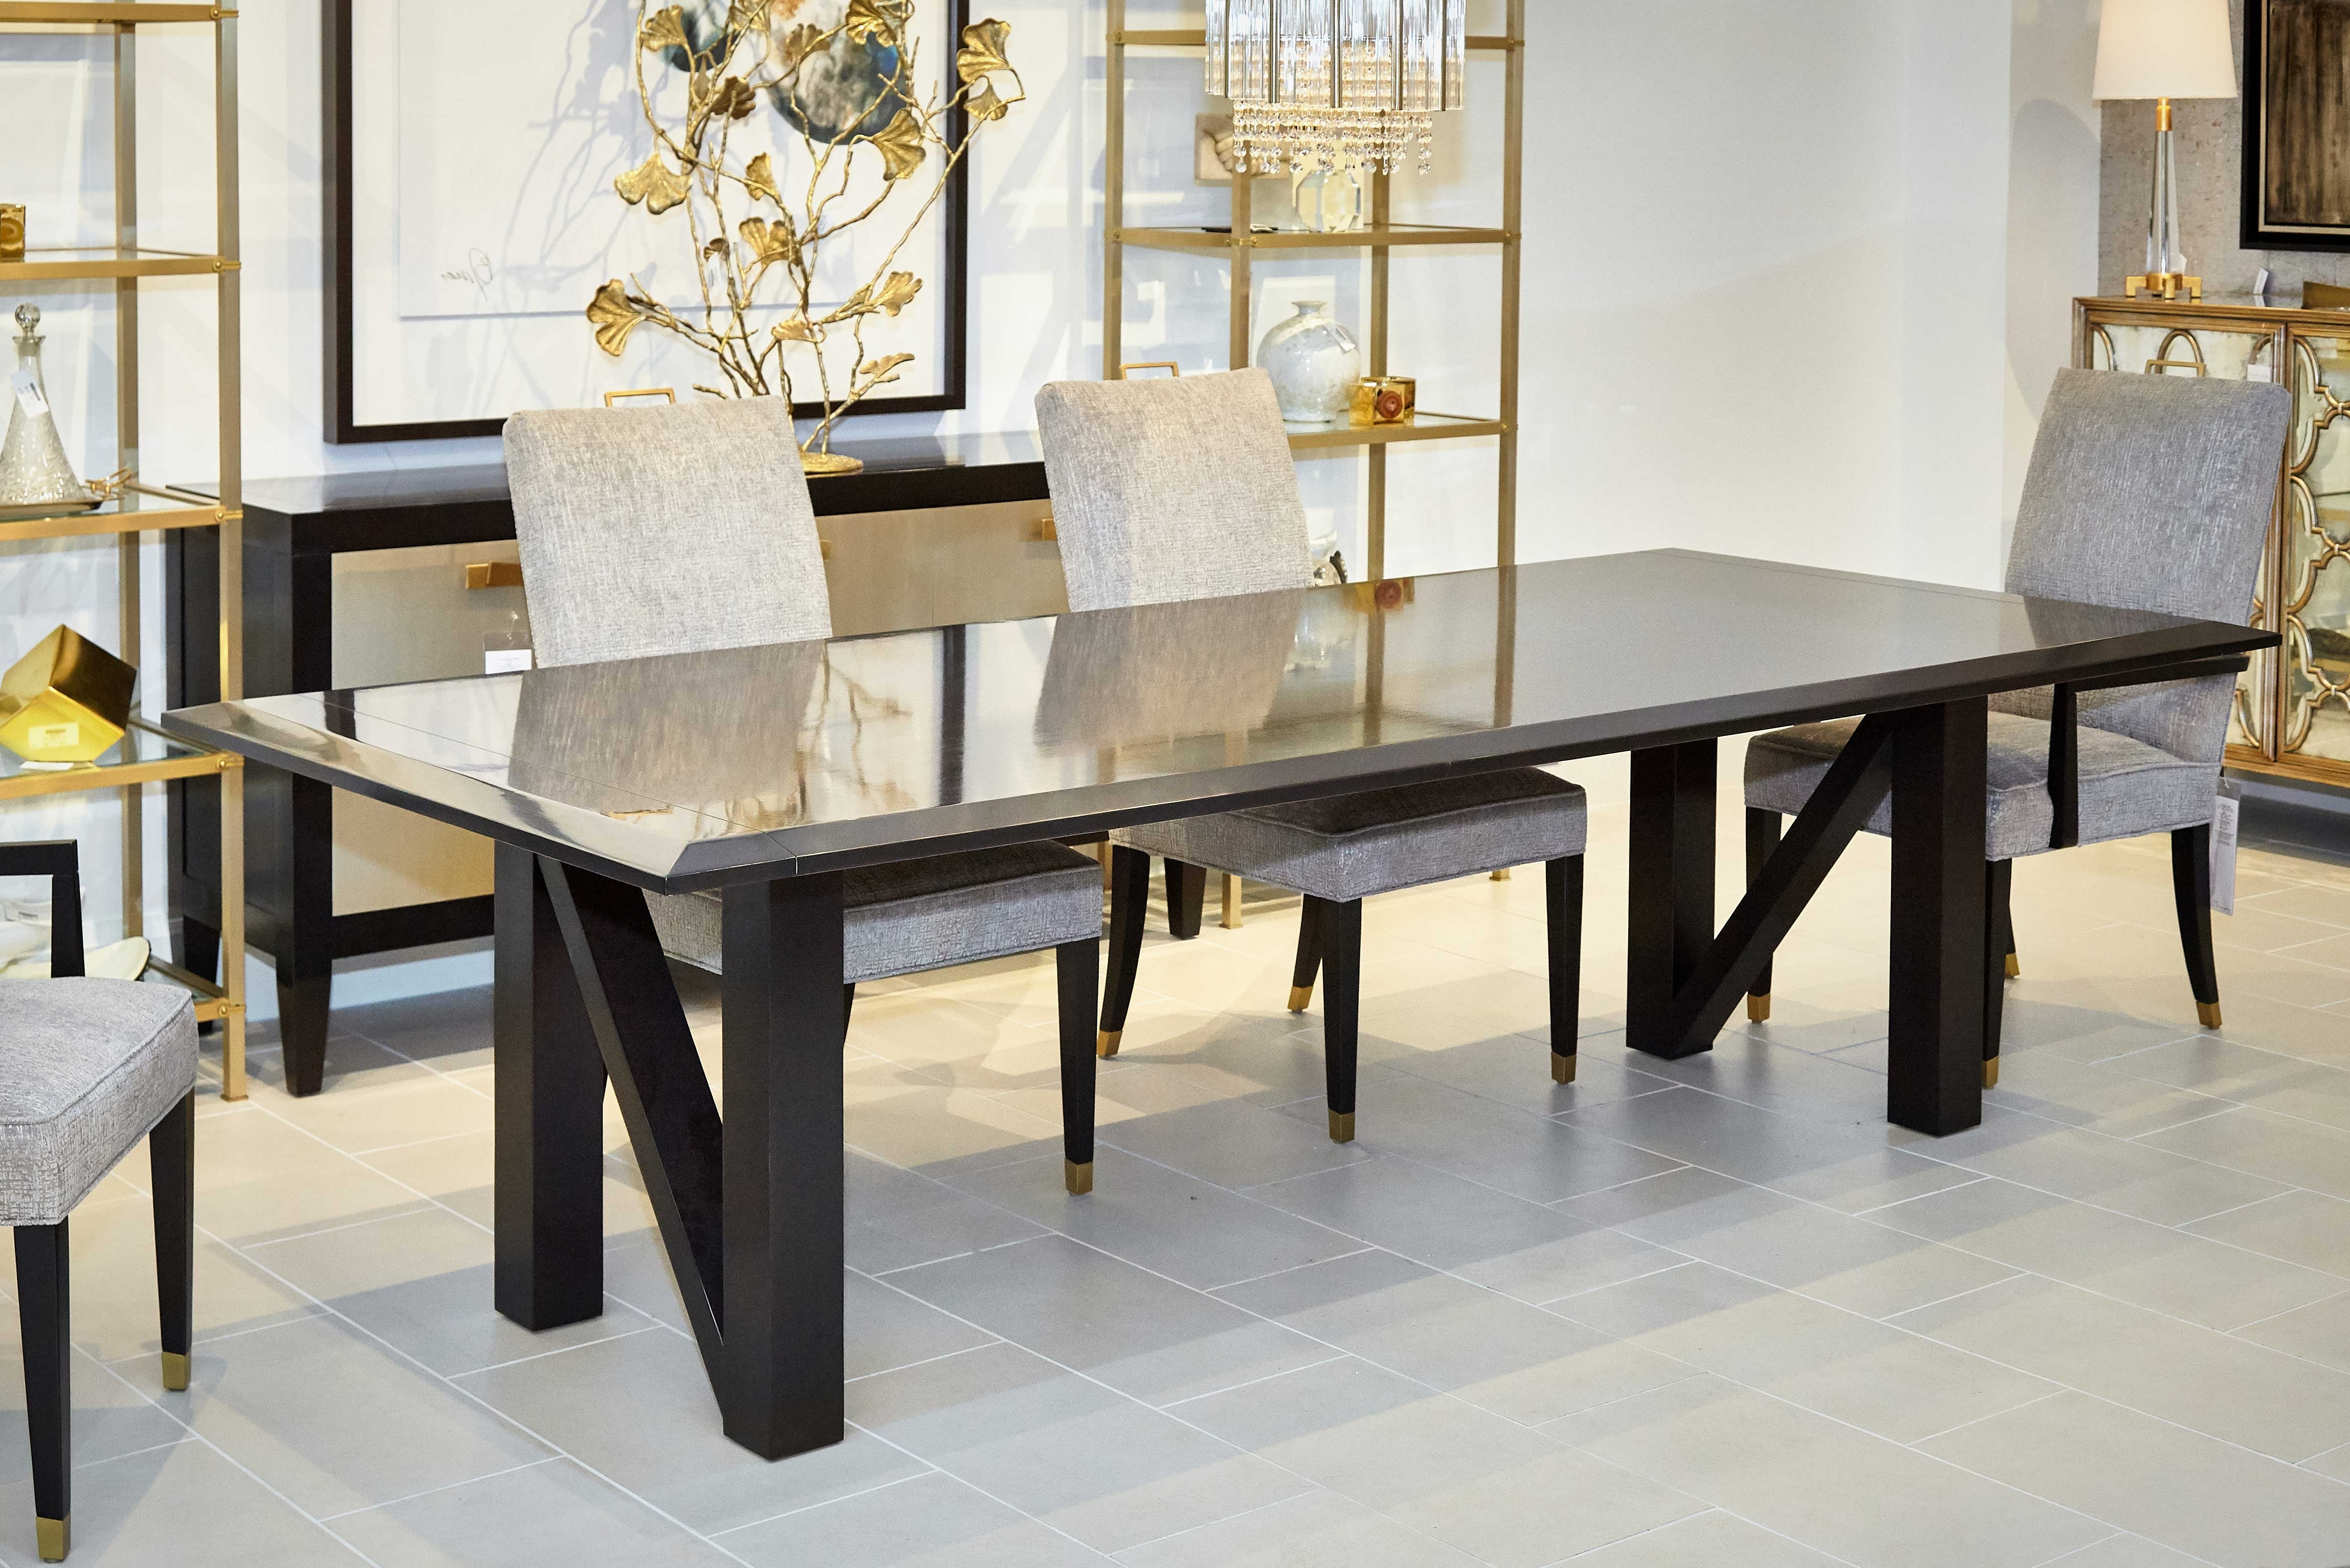 Monaco Dining Tables Throughout Famous Monaco Dining Table : Dining Room : Dining Tables : Chaddock Co (View 20 of 25)